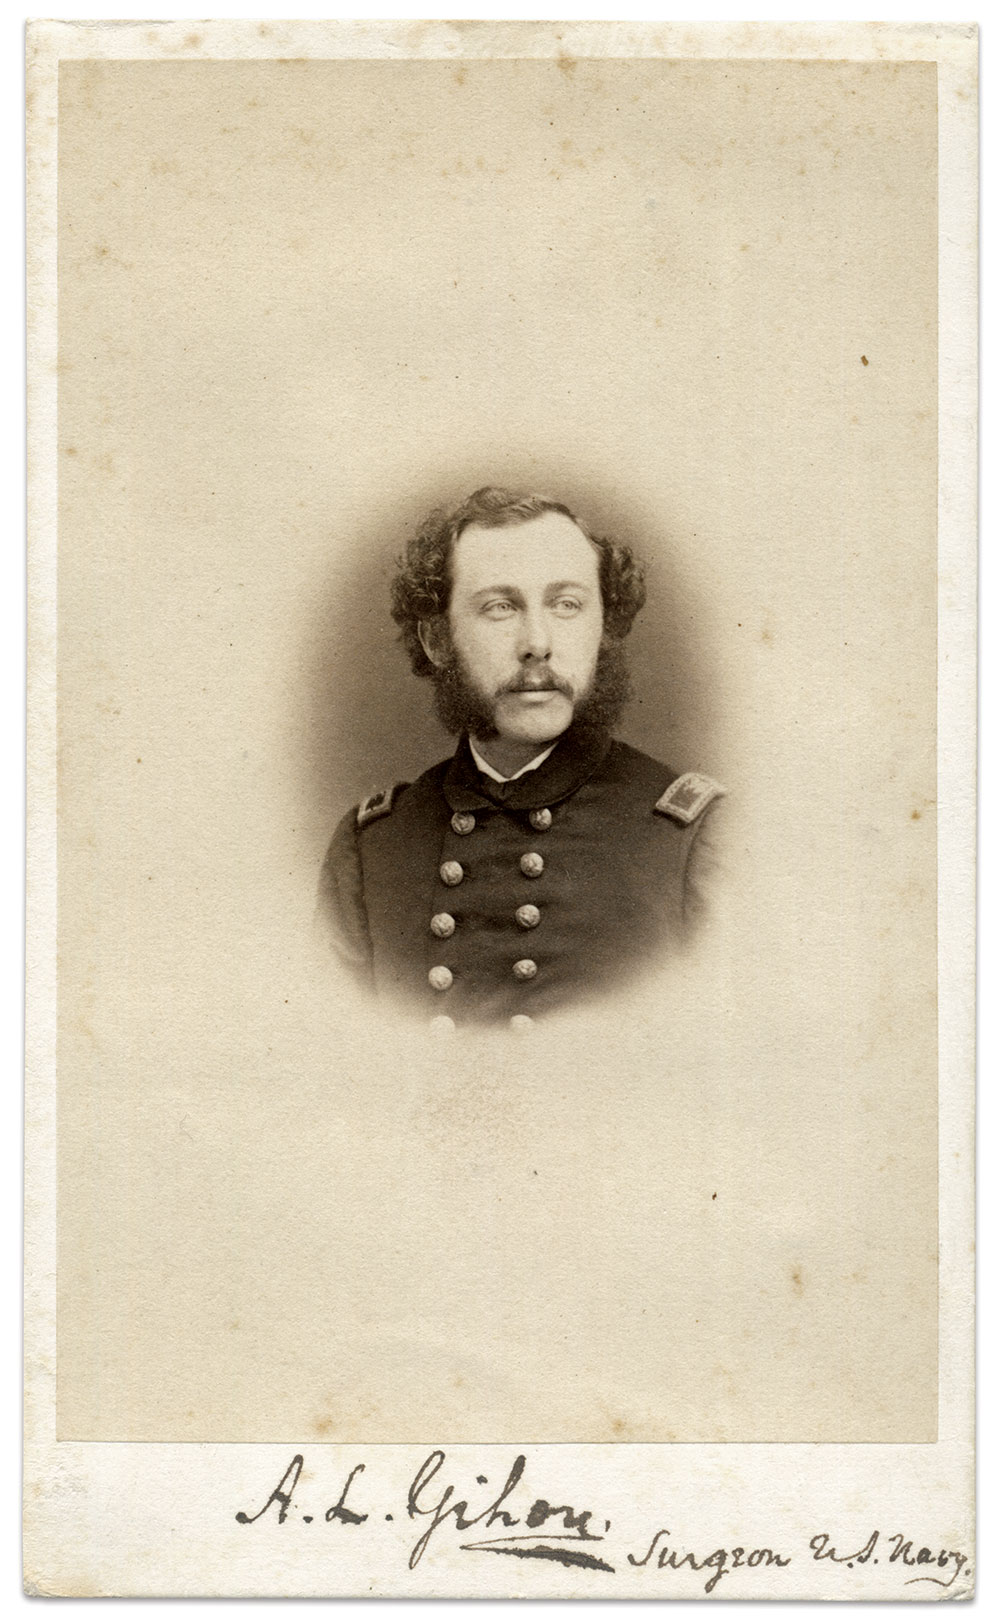 Gihon pictured as a surgeon, circa 1862. Carte de visite by John L. Gihon and Samuel Augustus Rixon of Philadelphia, Pa. Author's Collection.